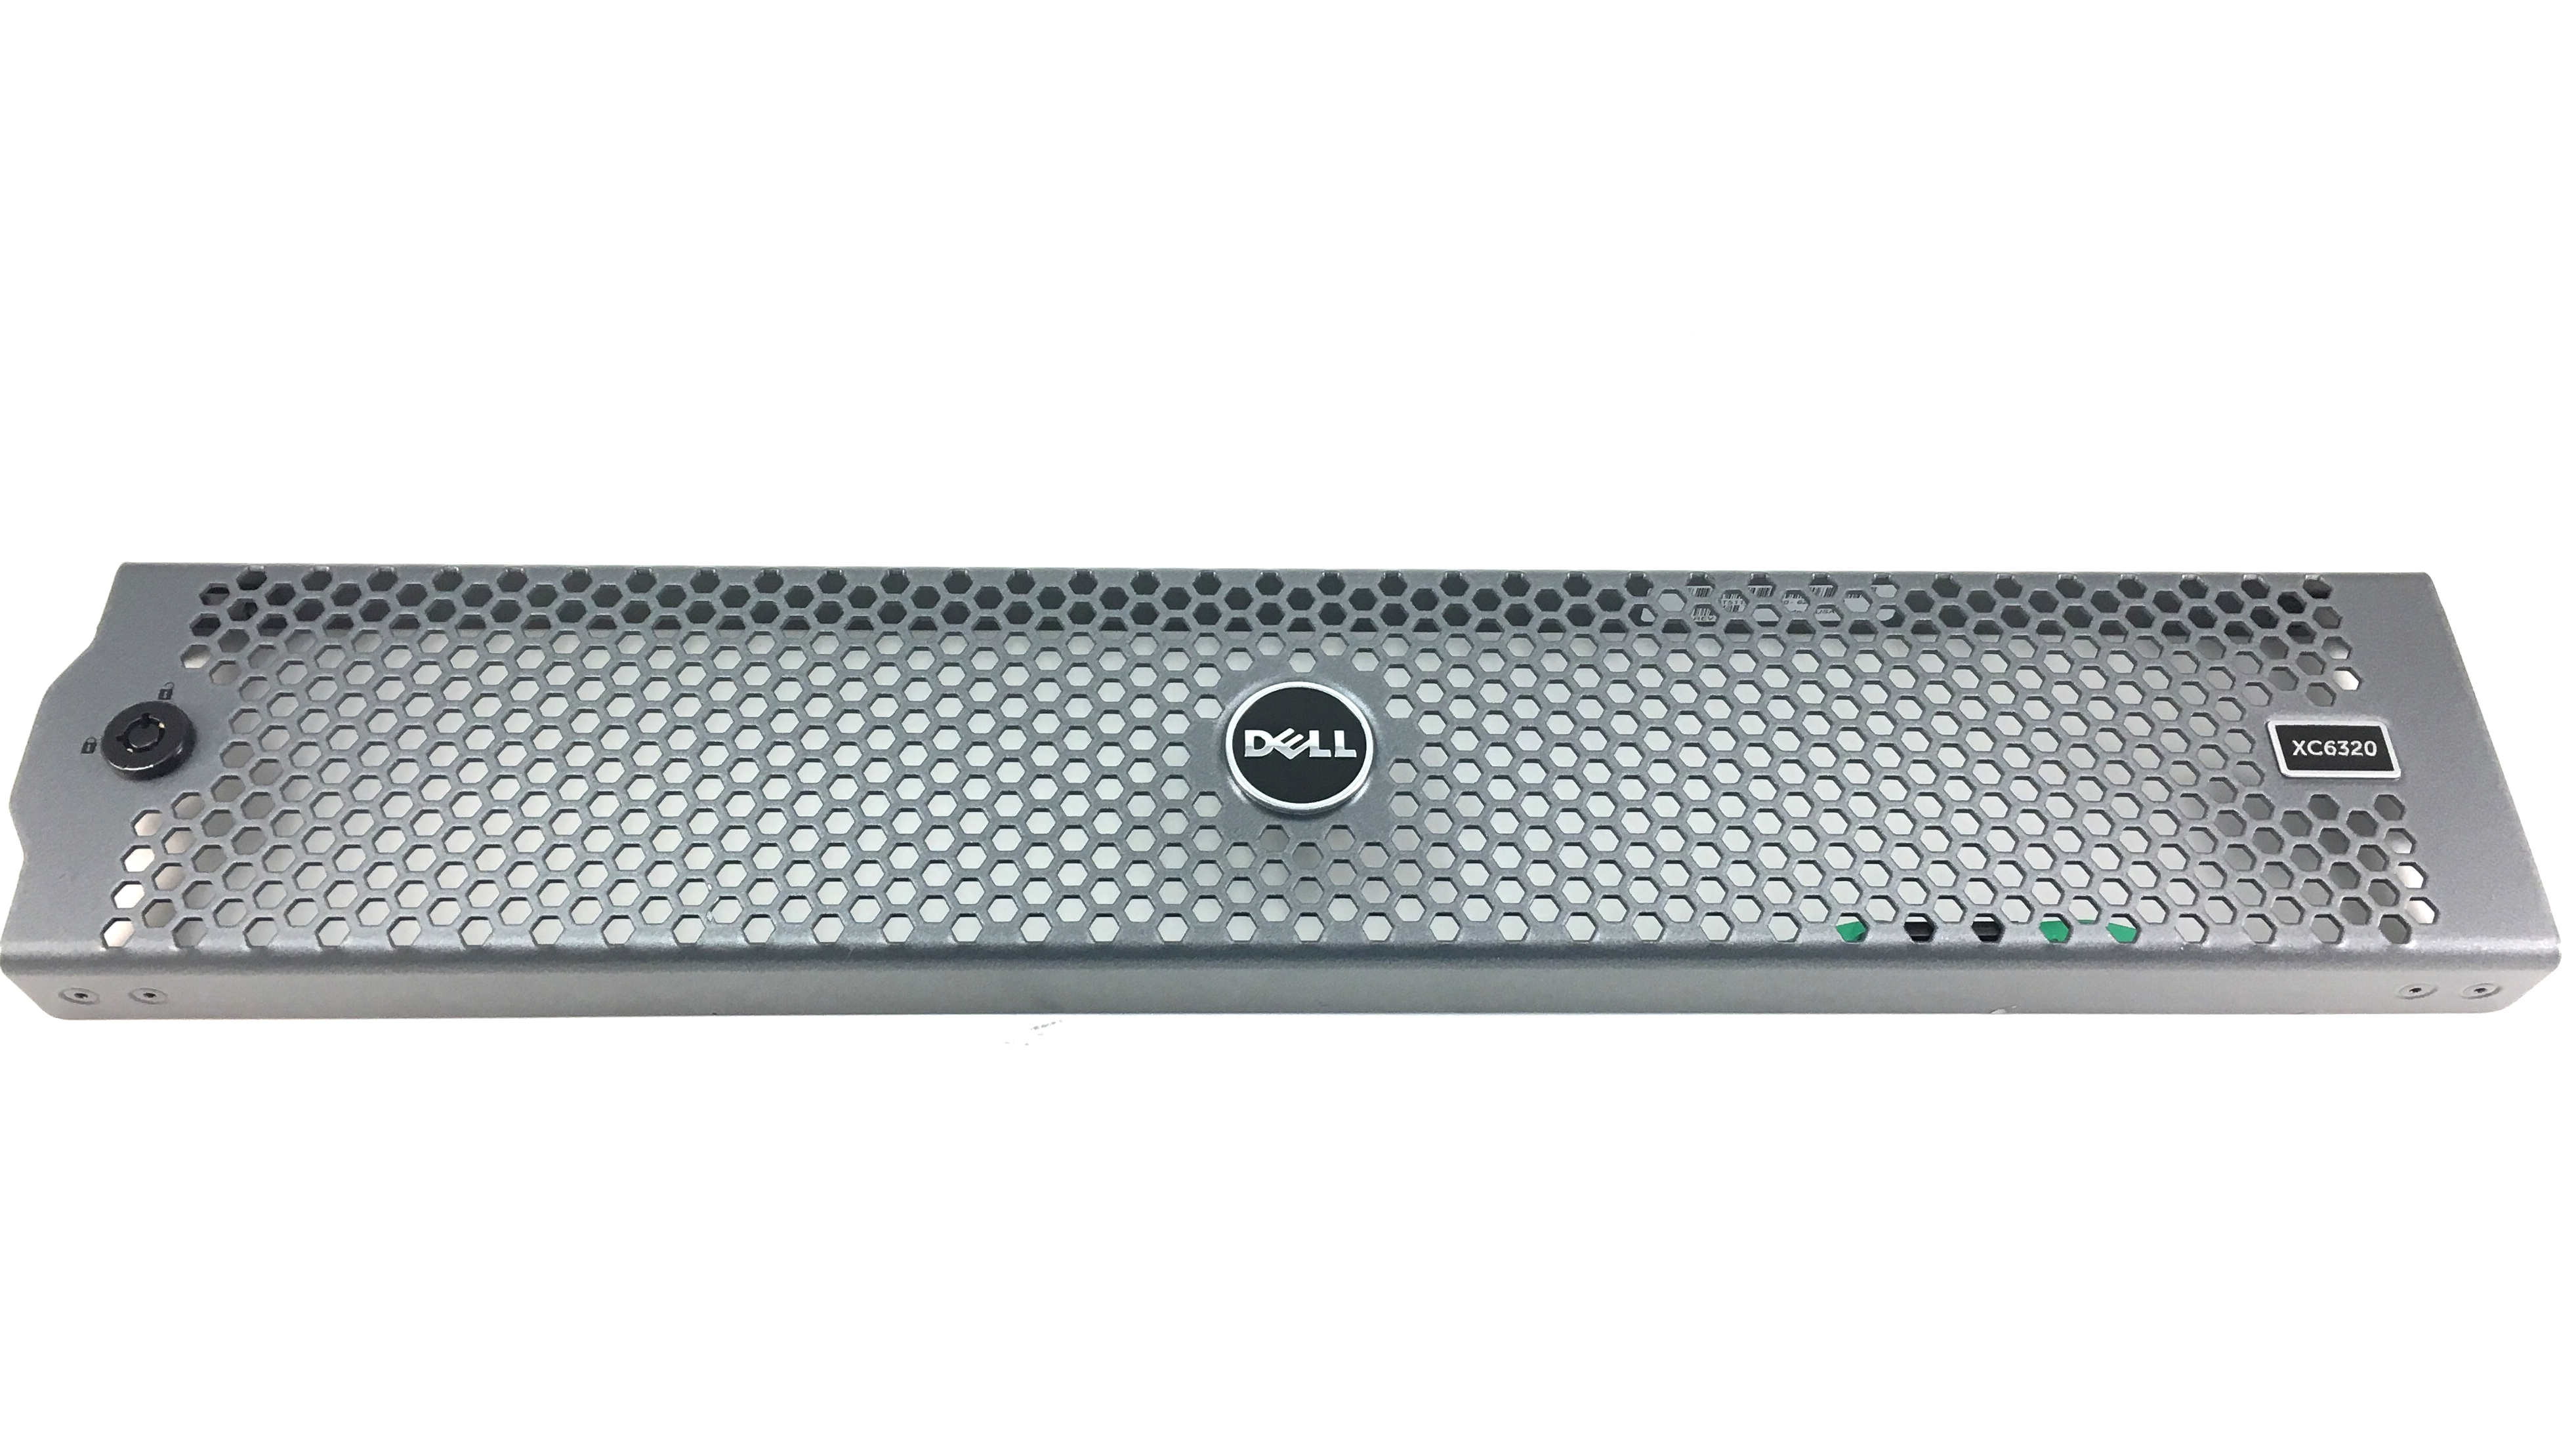 Dell Assembly Bezels For Xc6320 Server (T511X)